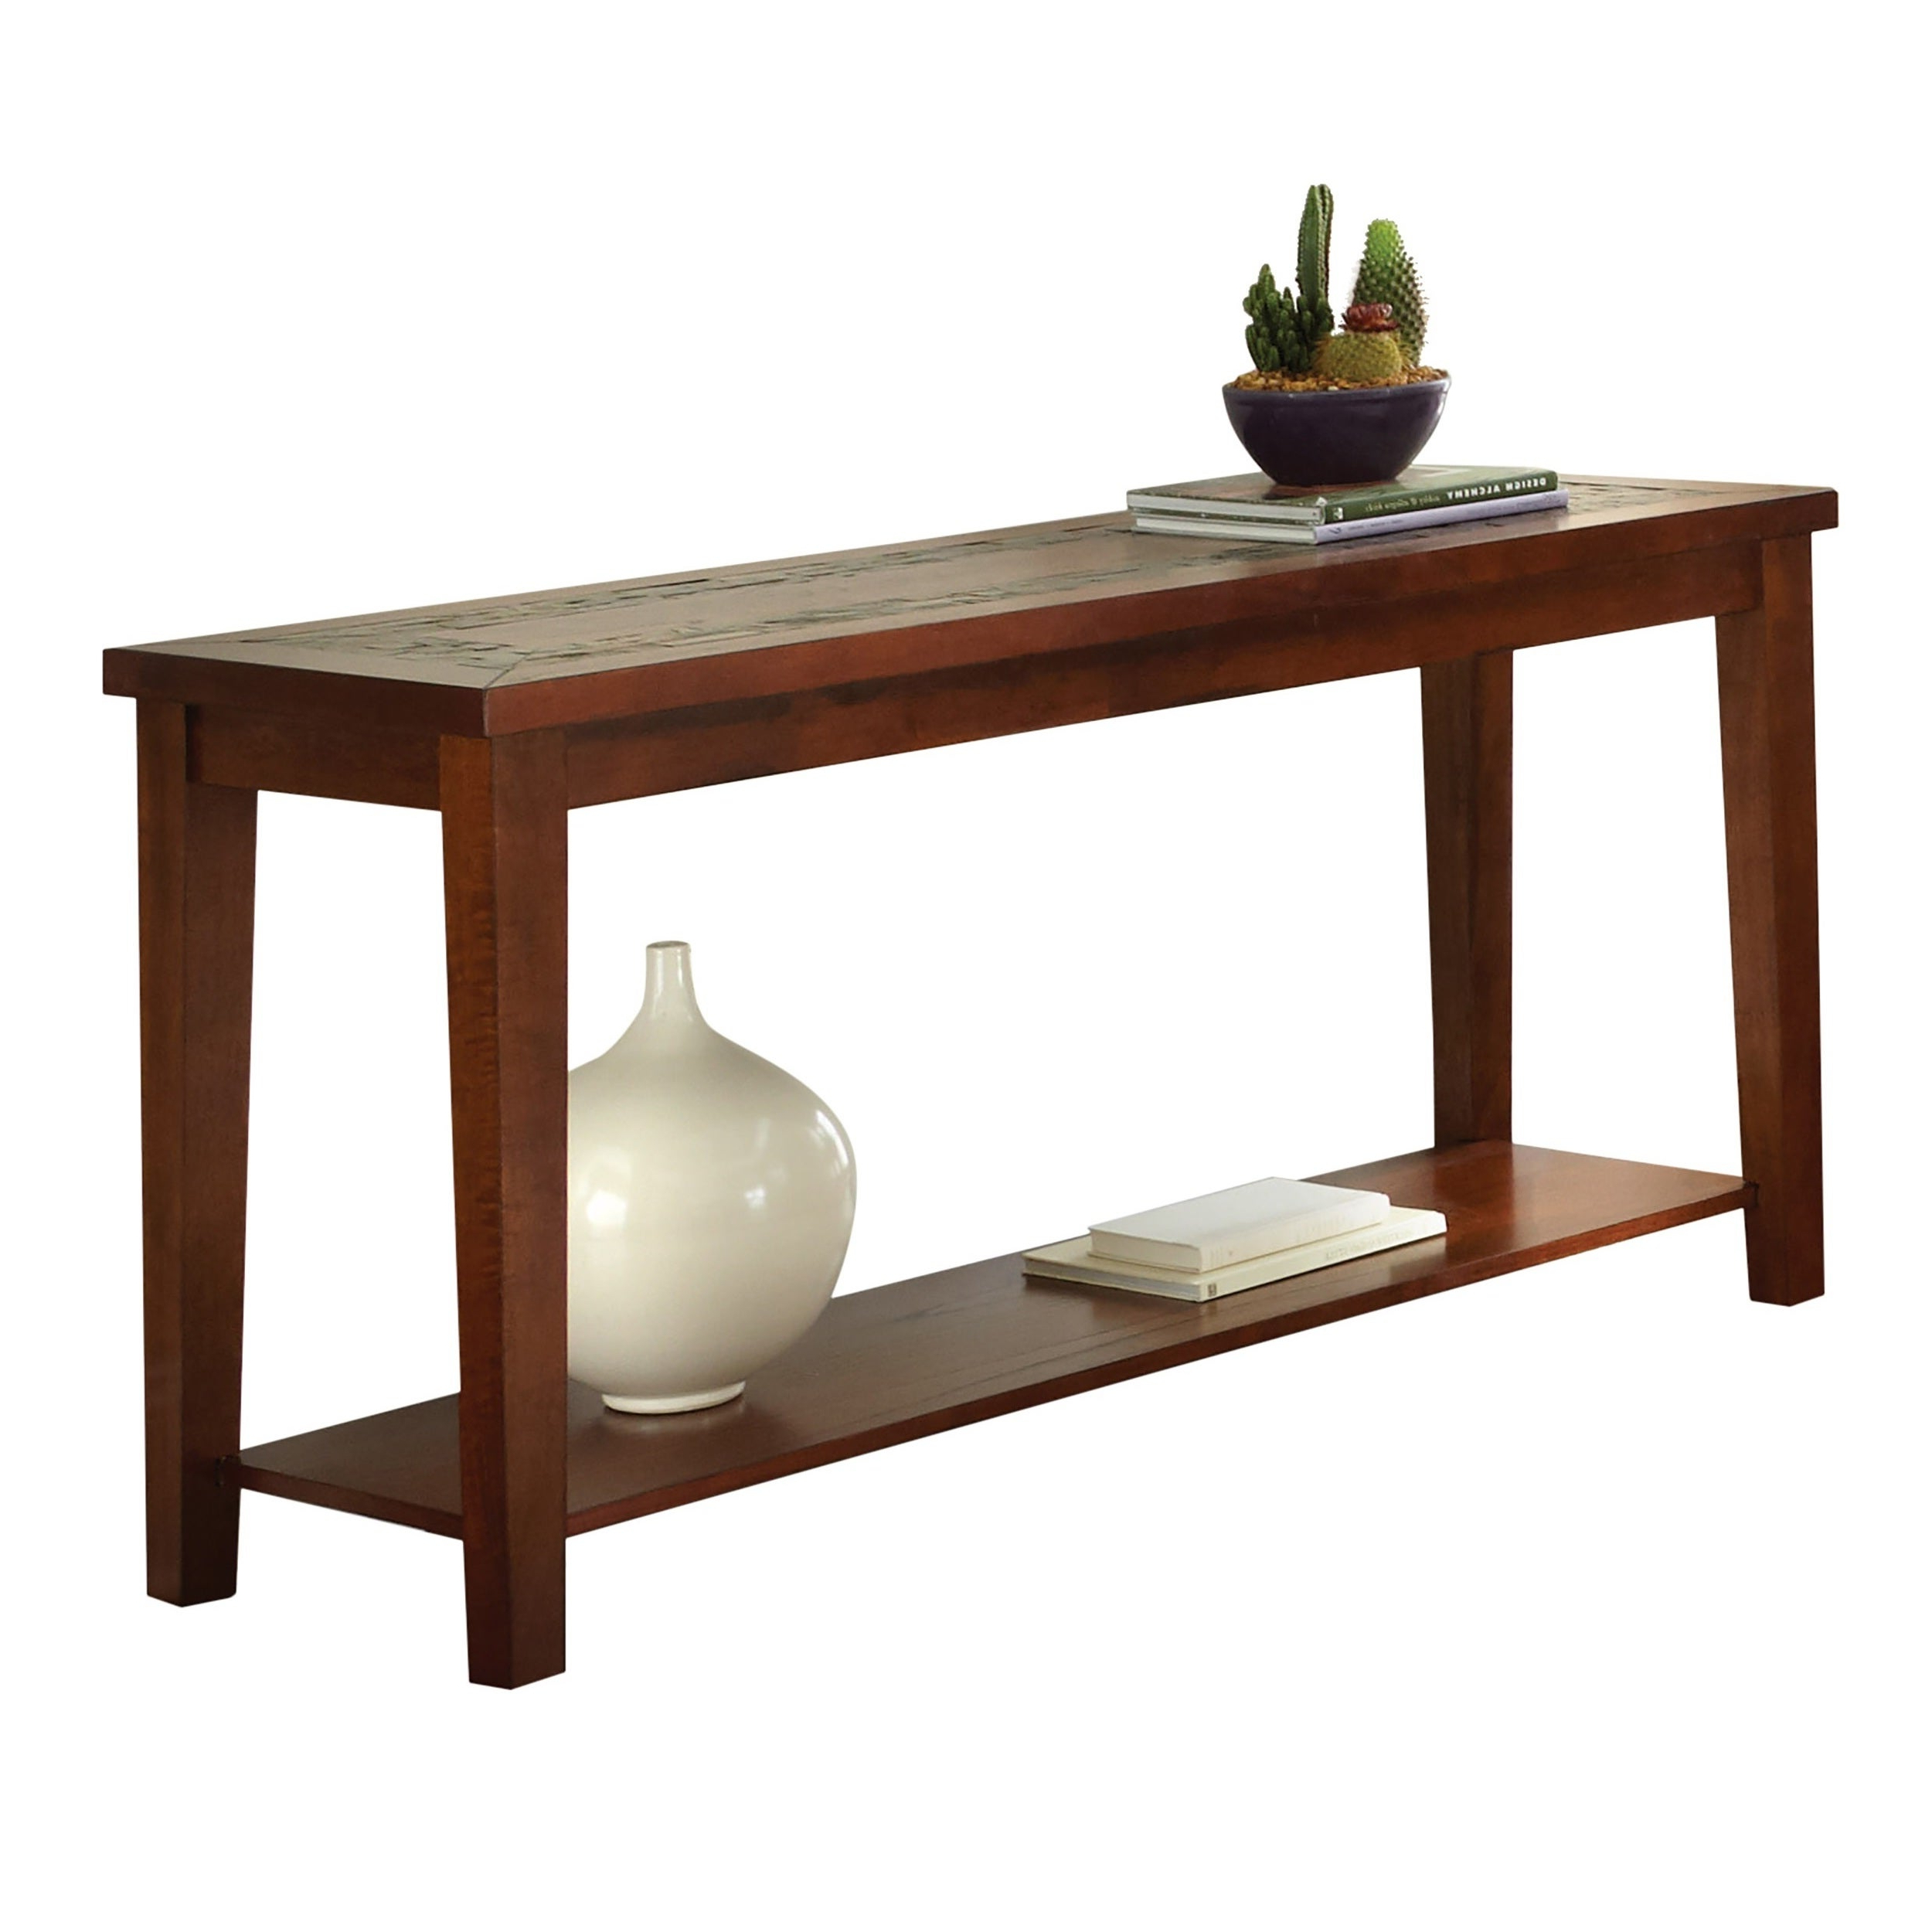 Greyson Living Plymouth Sofa Table In Most Up To Date Copper Grove Ixia Rustic Oak And Slate Tile Coffee Tables (View 18 of 20)